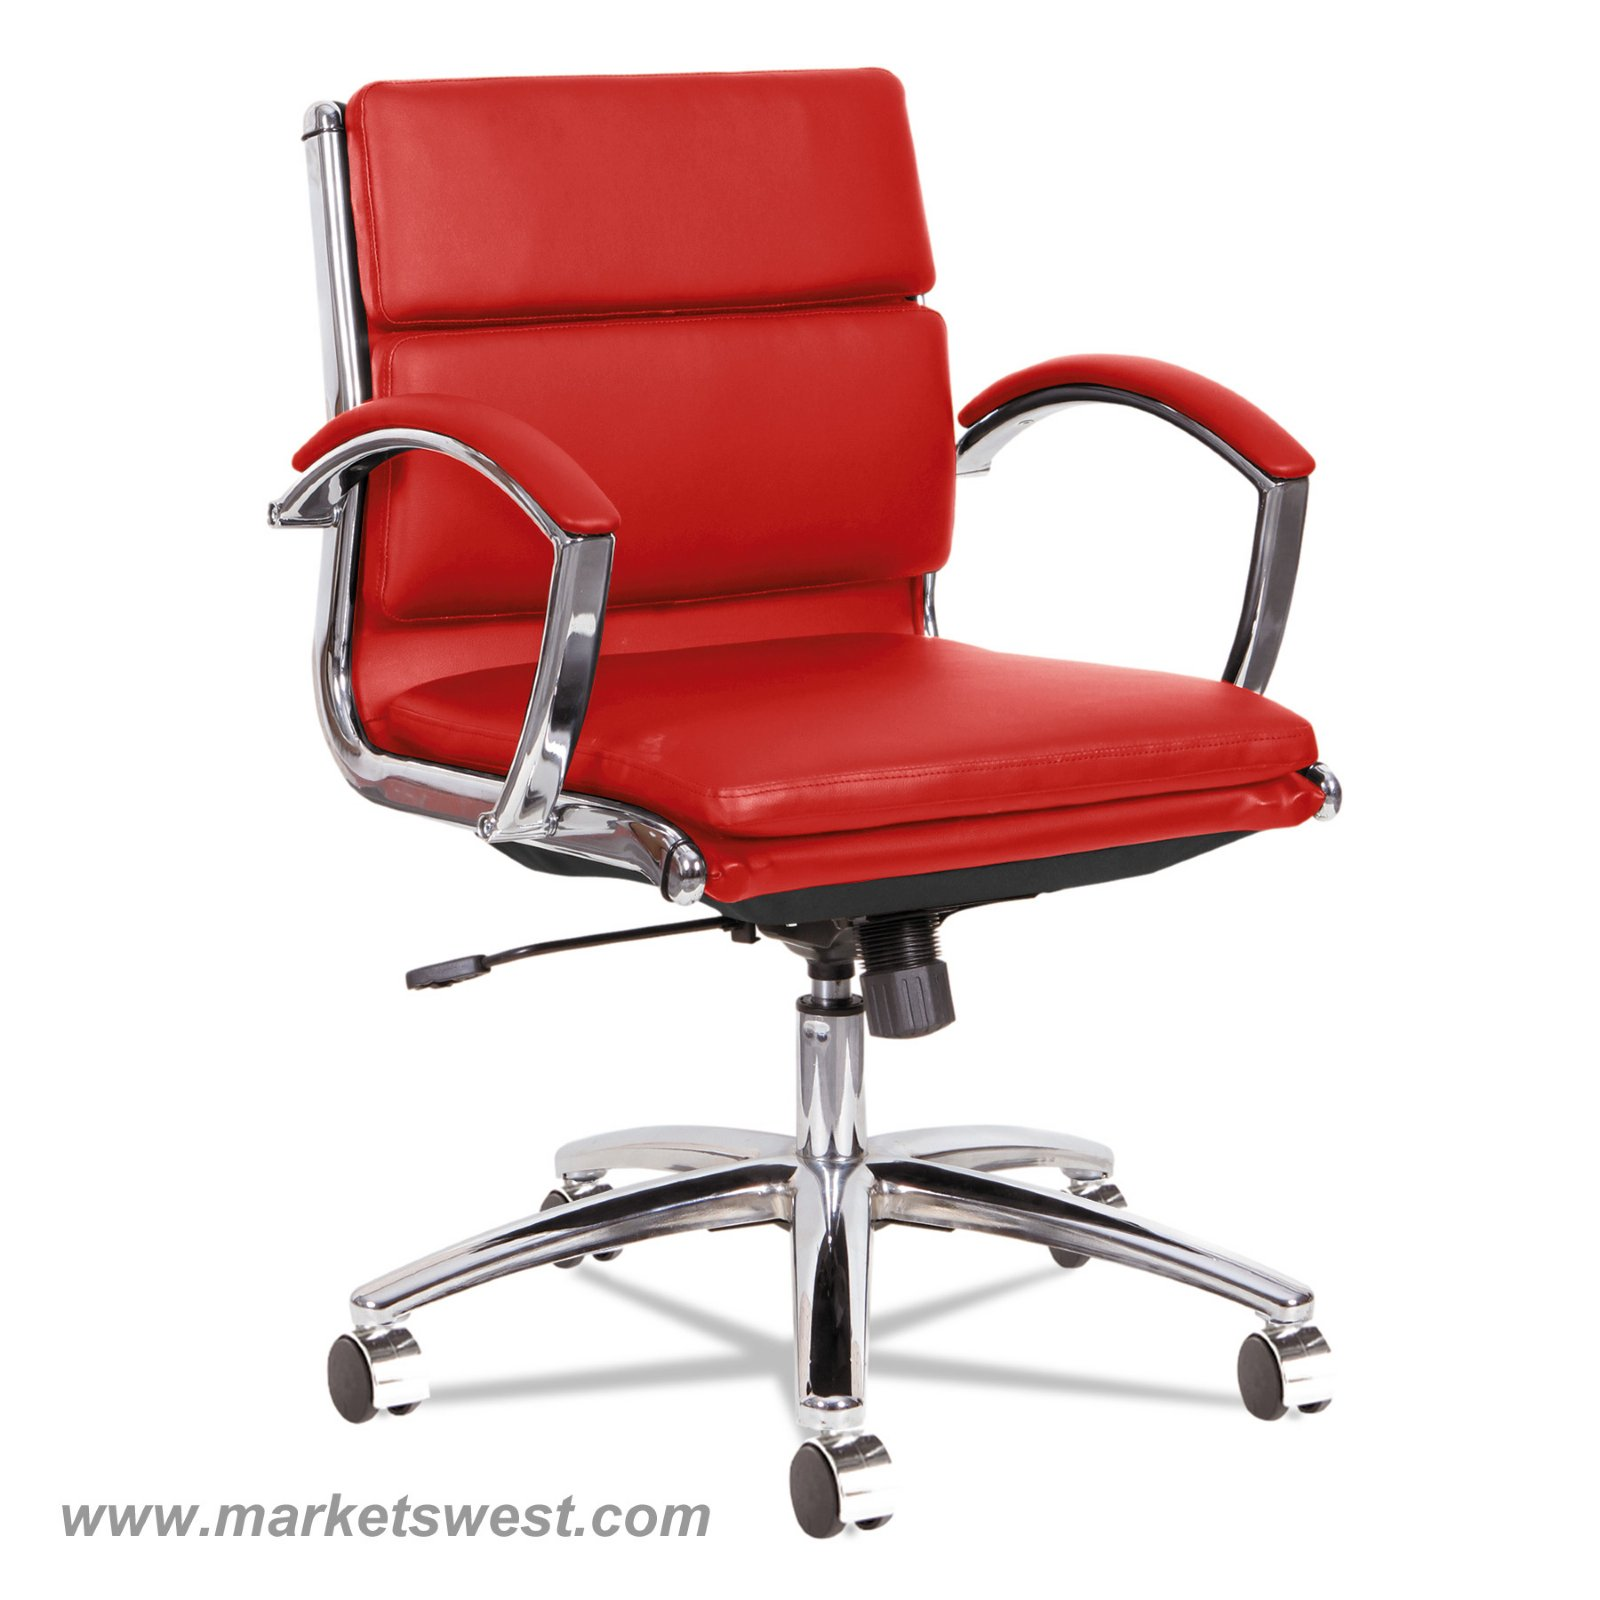 Neratoli Low Back Swivel Tilt Chair Red Soft Touch Leather